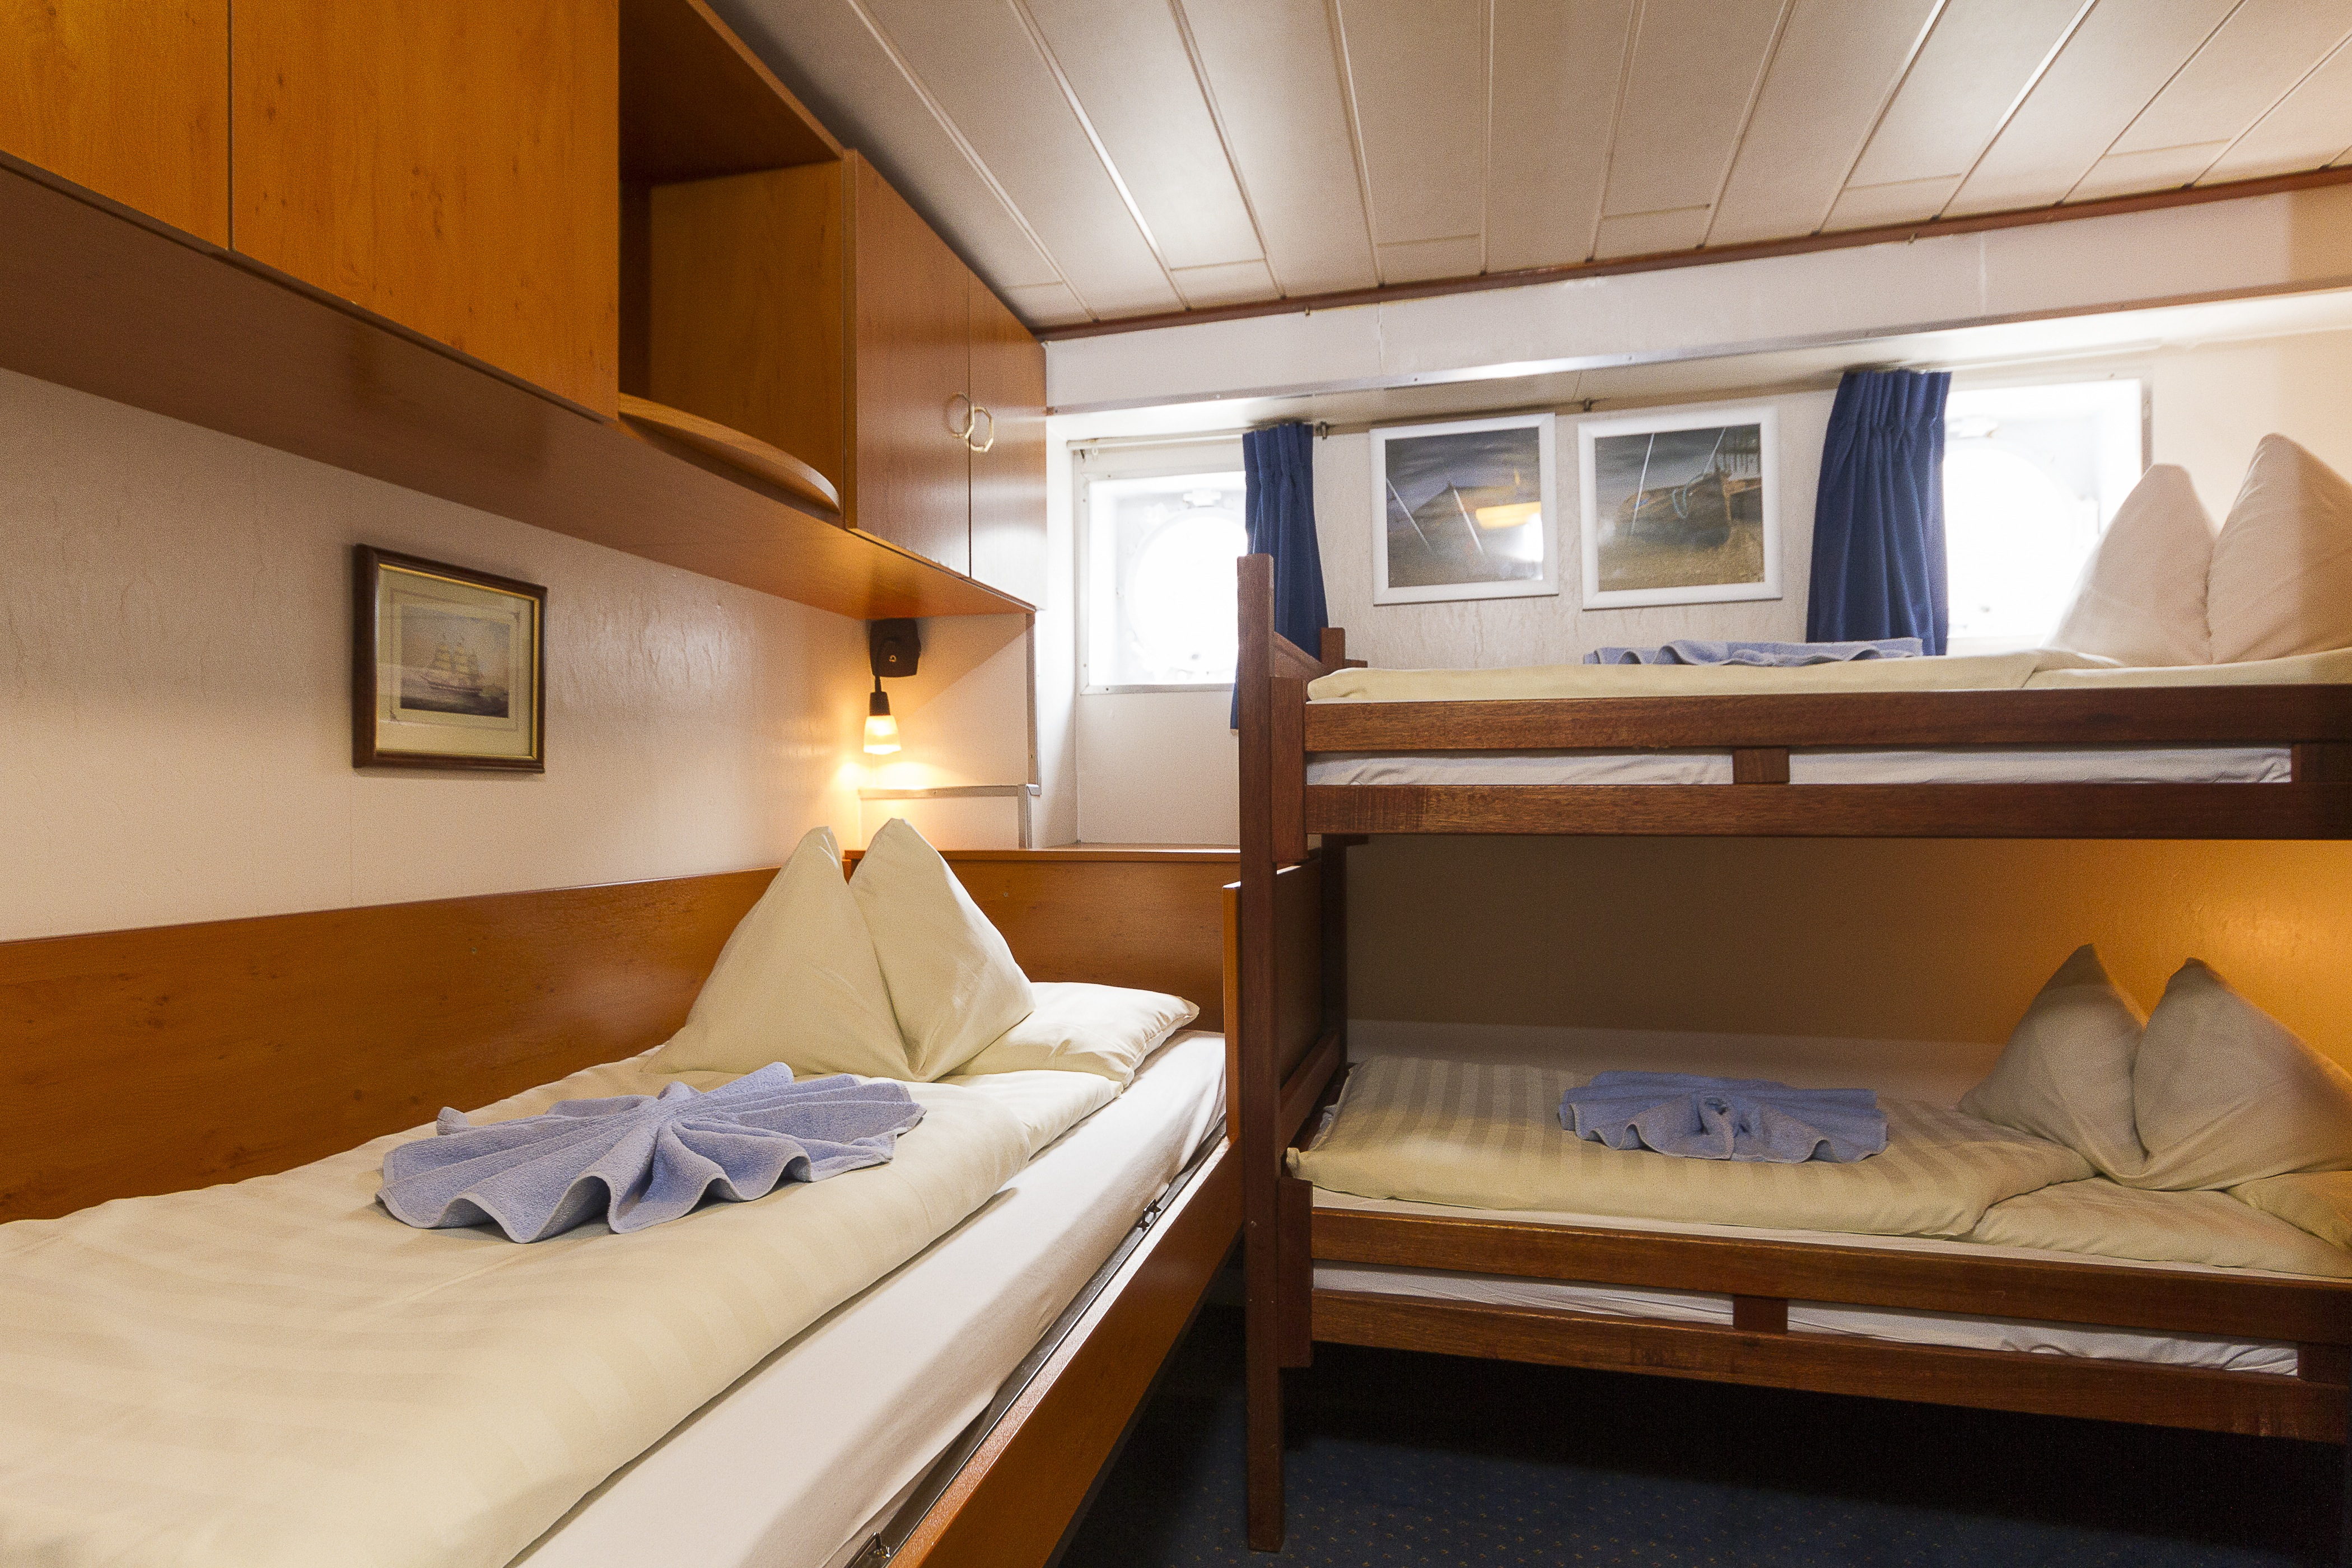 The River Cruise Line MPS Lady Anne Accommodation Passenger Deck Cabin 3 Berth.jpg